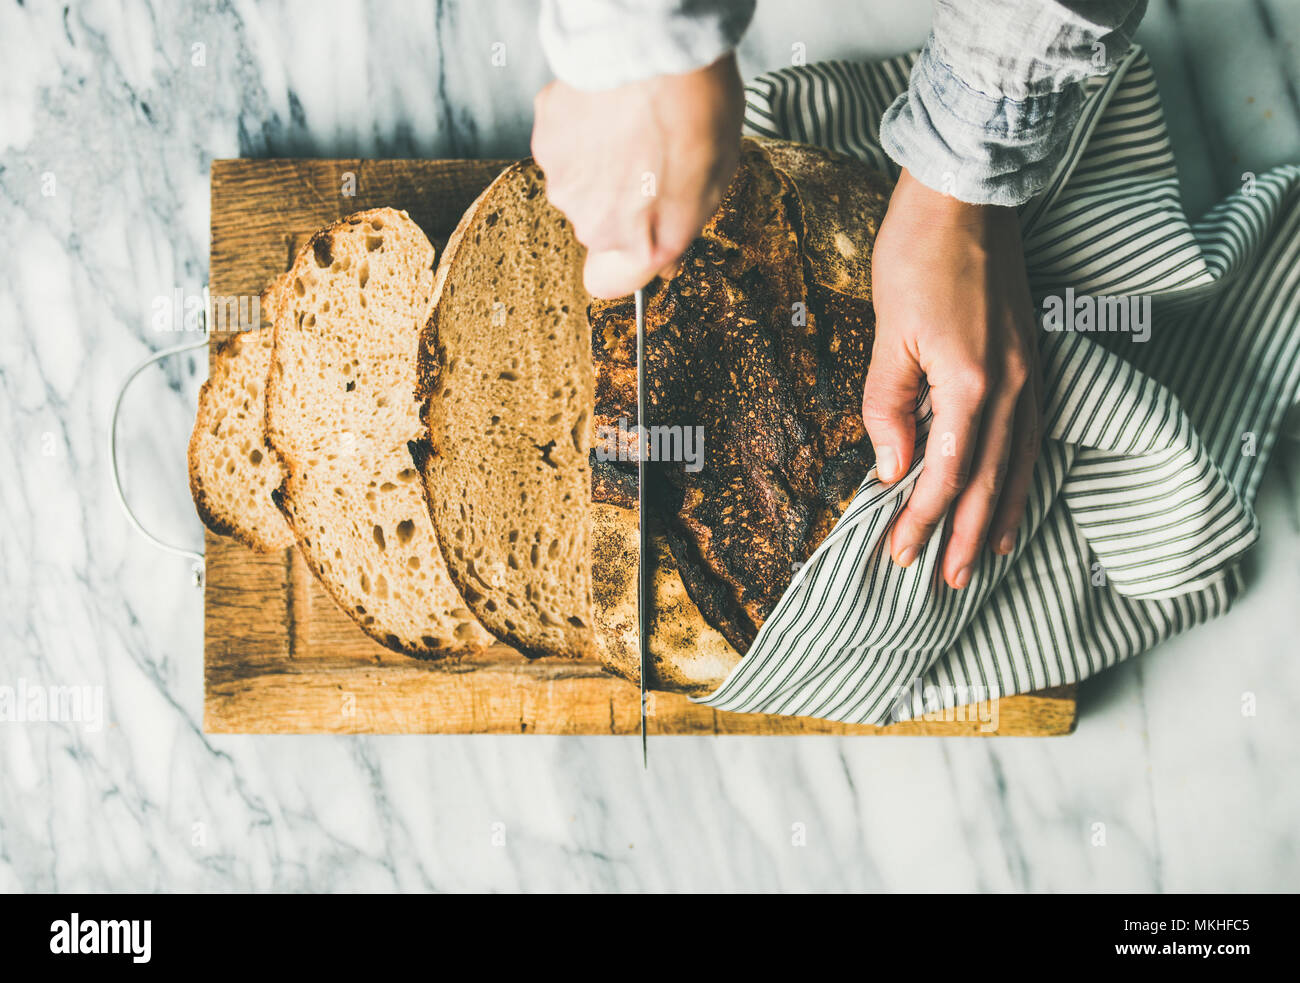 Female hands cutting freshly baked sourdough bread into pieces Stock Photo